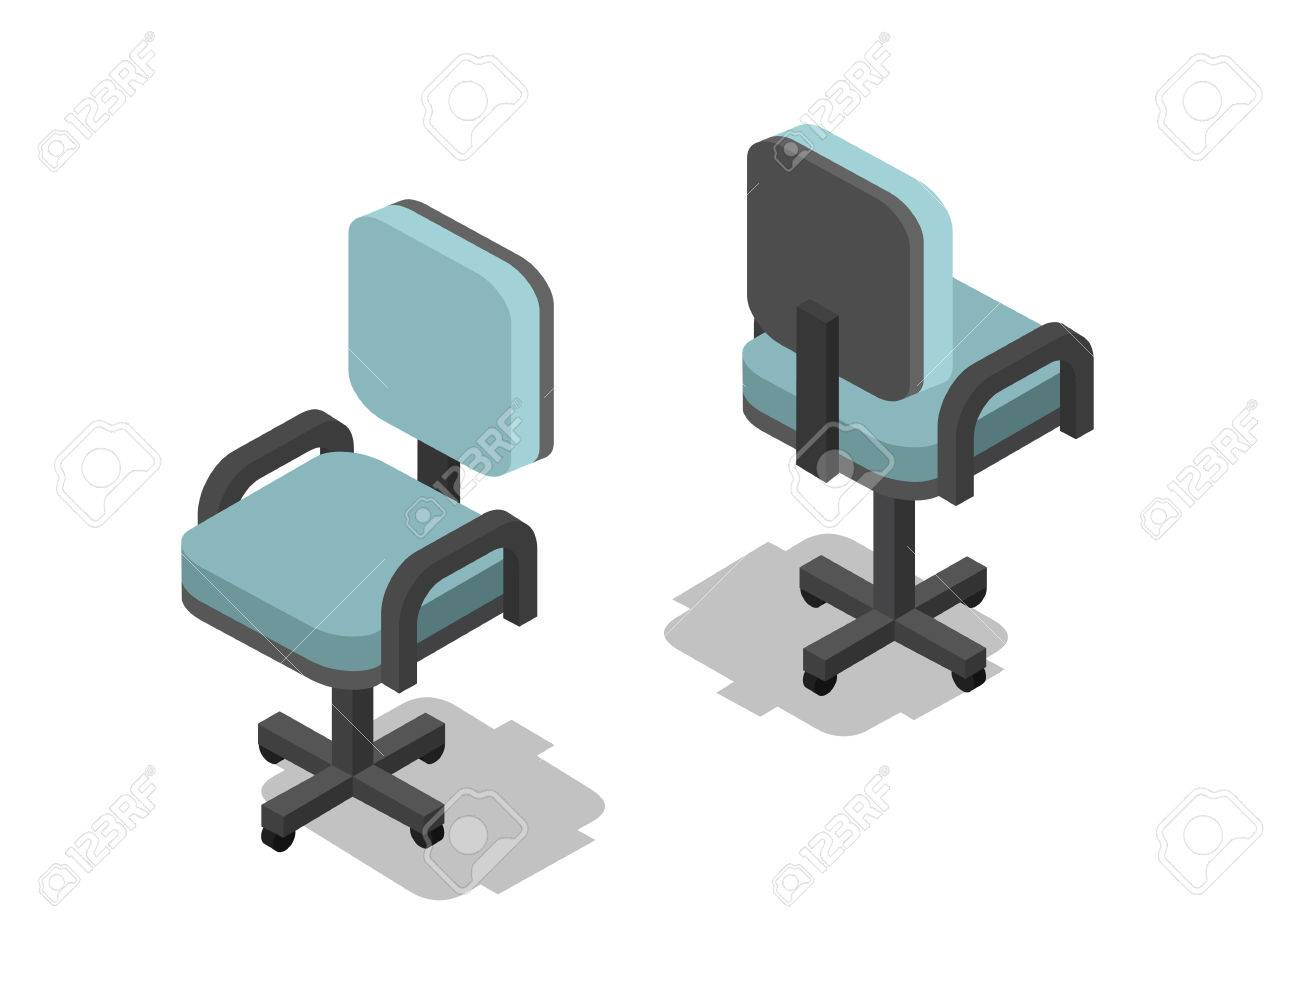 office chair illustration pads for bottom of legs vector isometric 3d flat furniture icon interior design info graphics and games